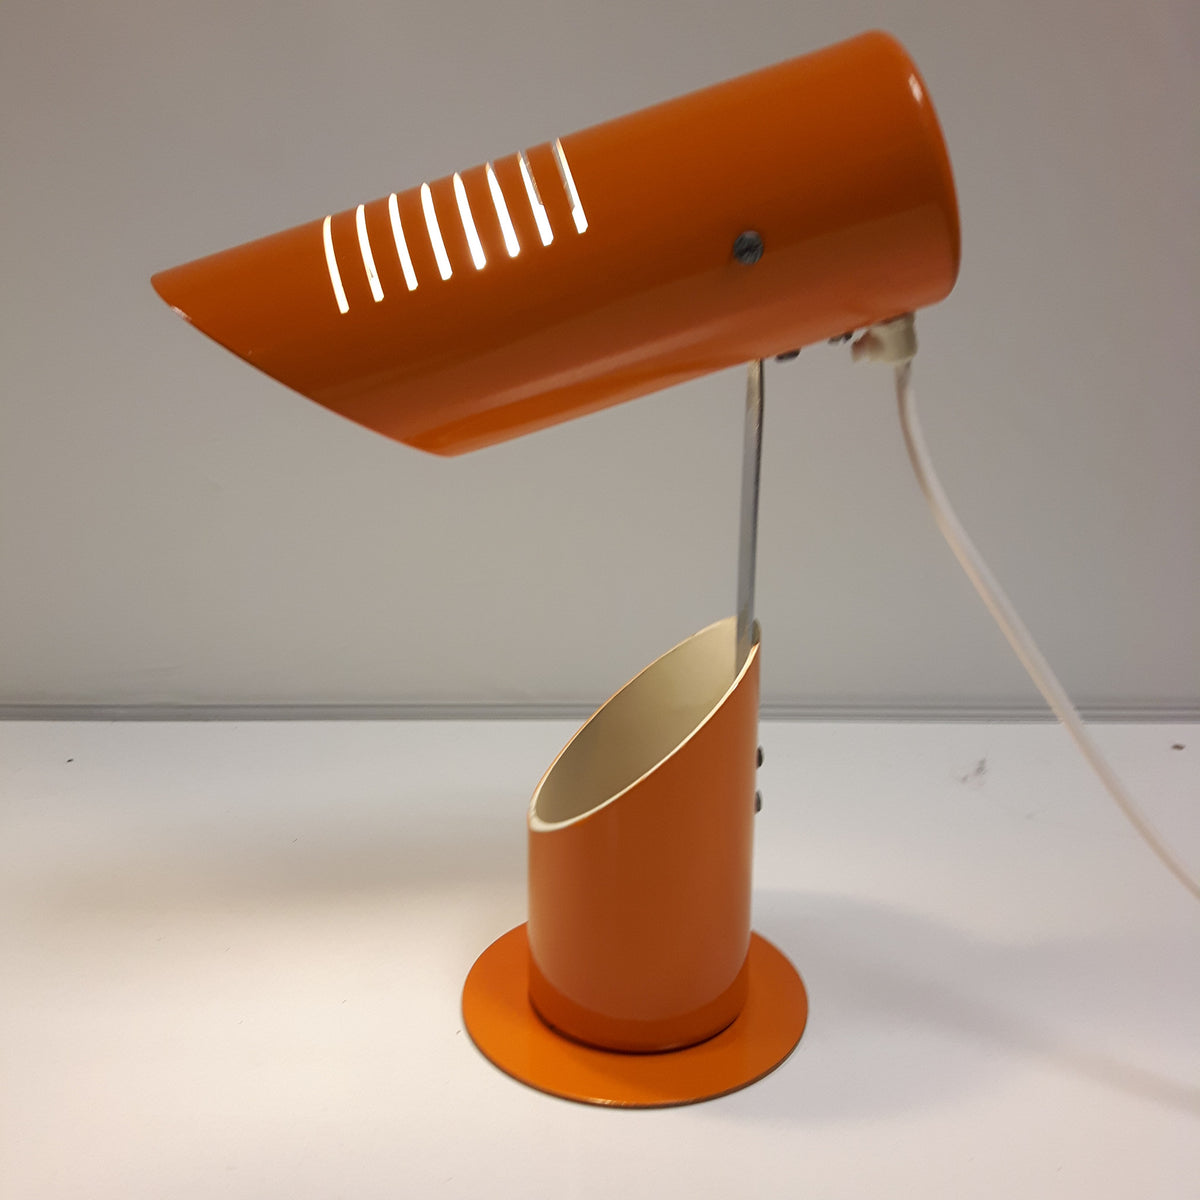 1960s/1970s Articulated Desk Lamp